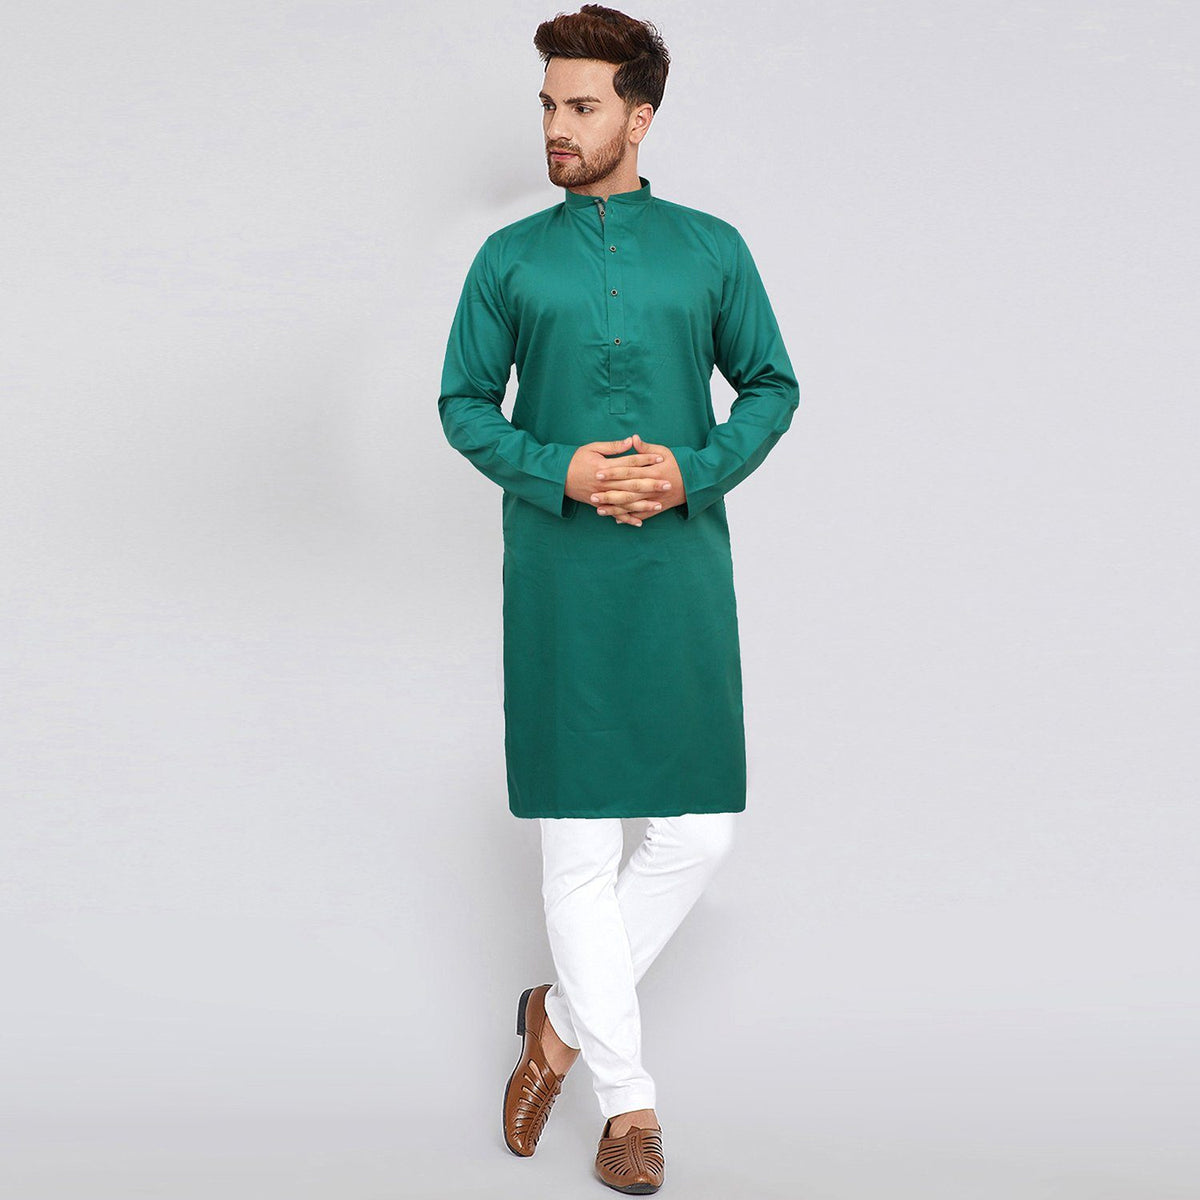 AXIS-sea green premium quality kurta (725)